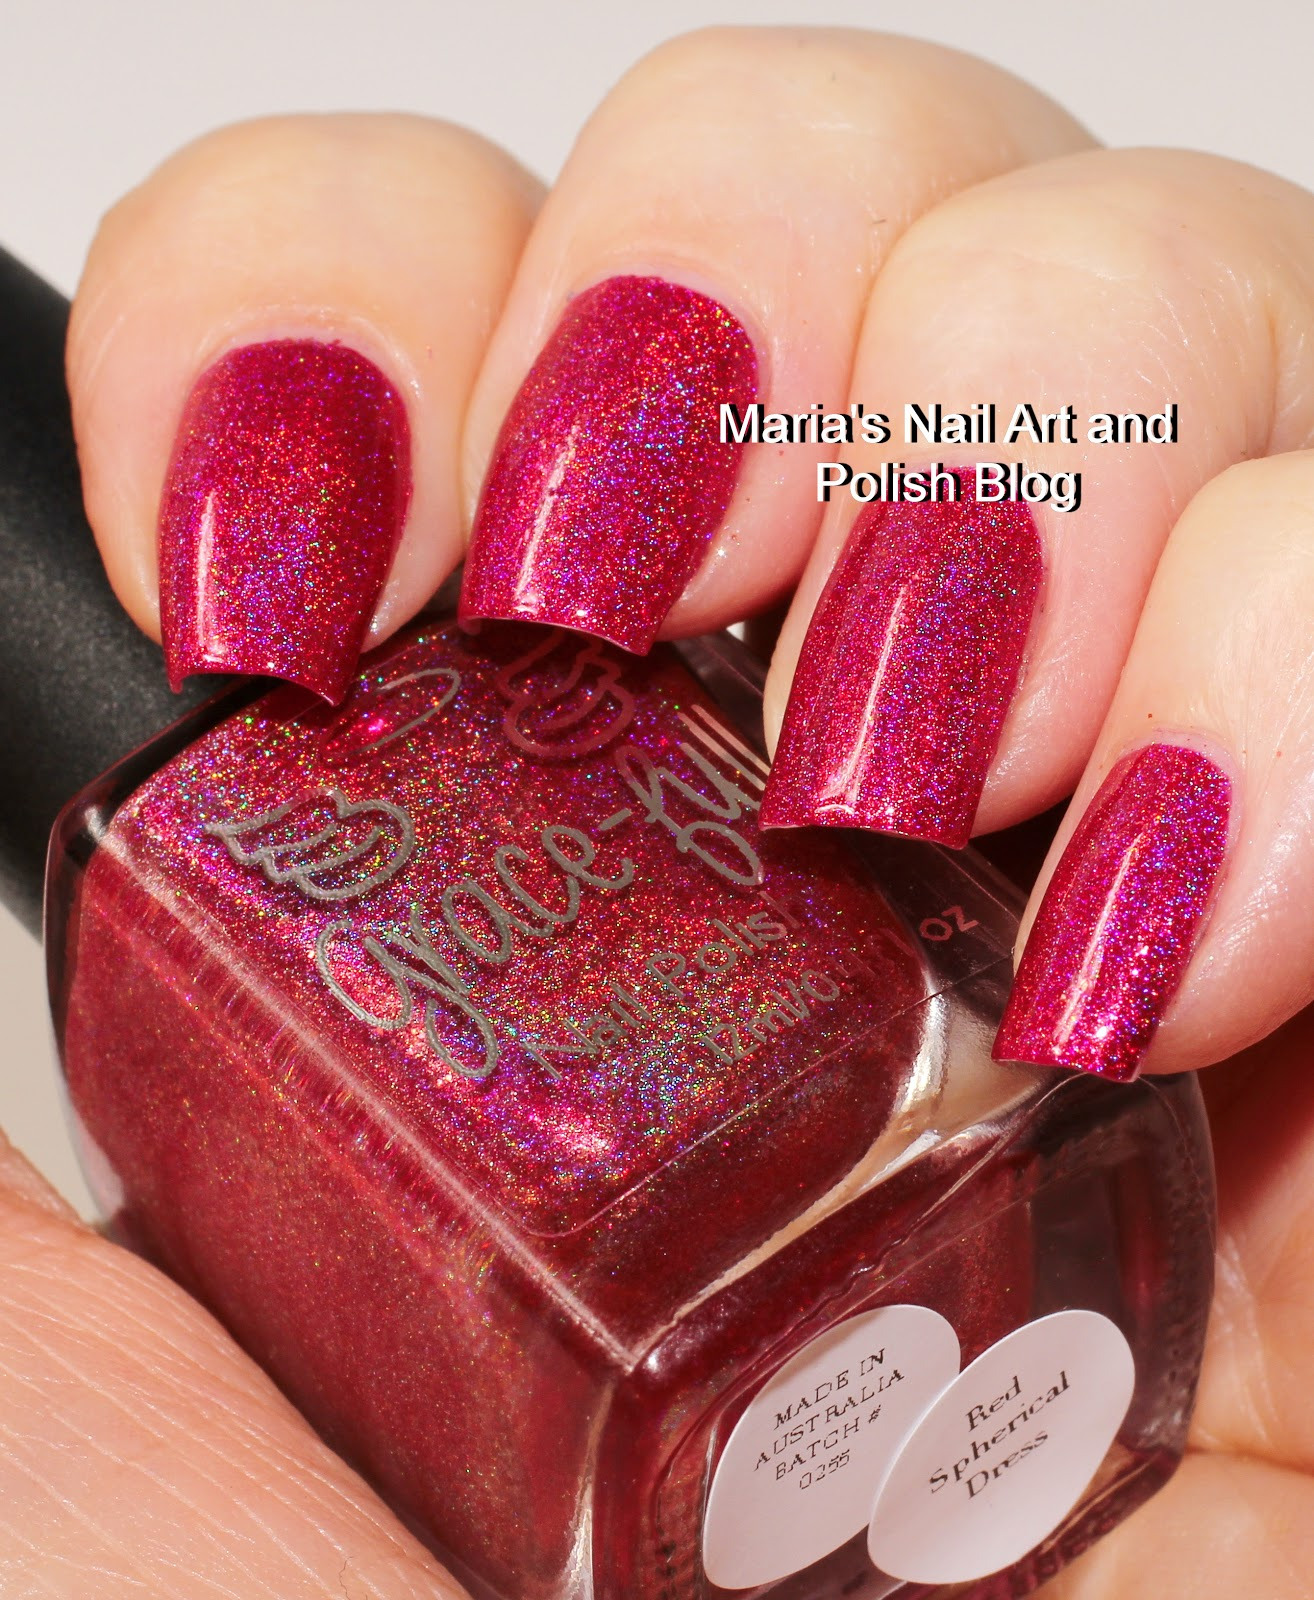 Marias Nail Art And Polish Blog: Grace-full Nail Polish